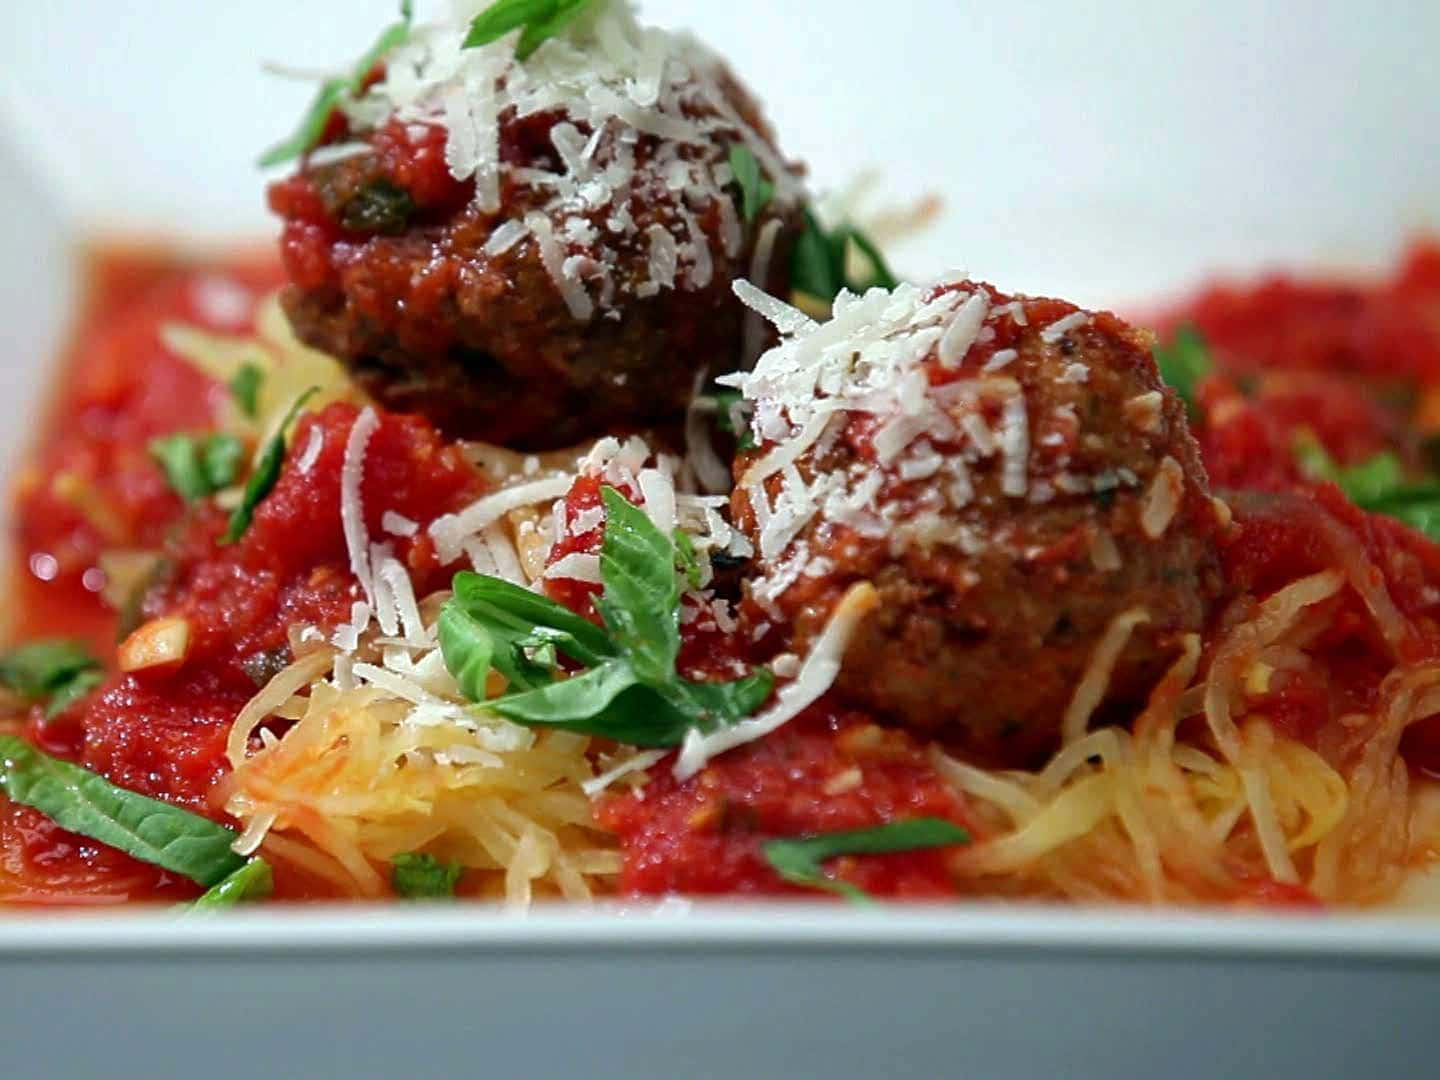 Italian meatballs and sauce is a classic dish.